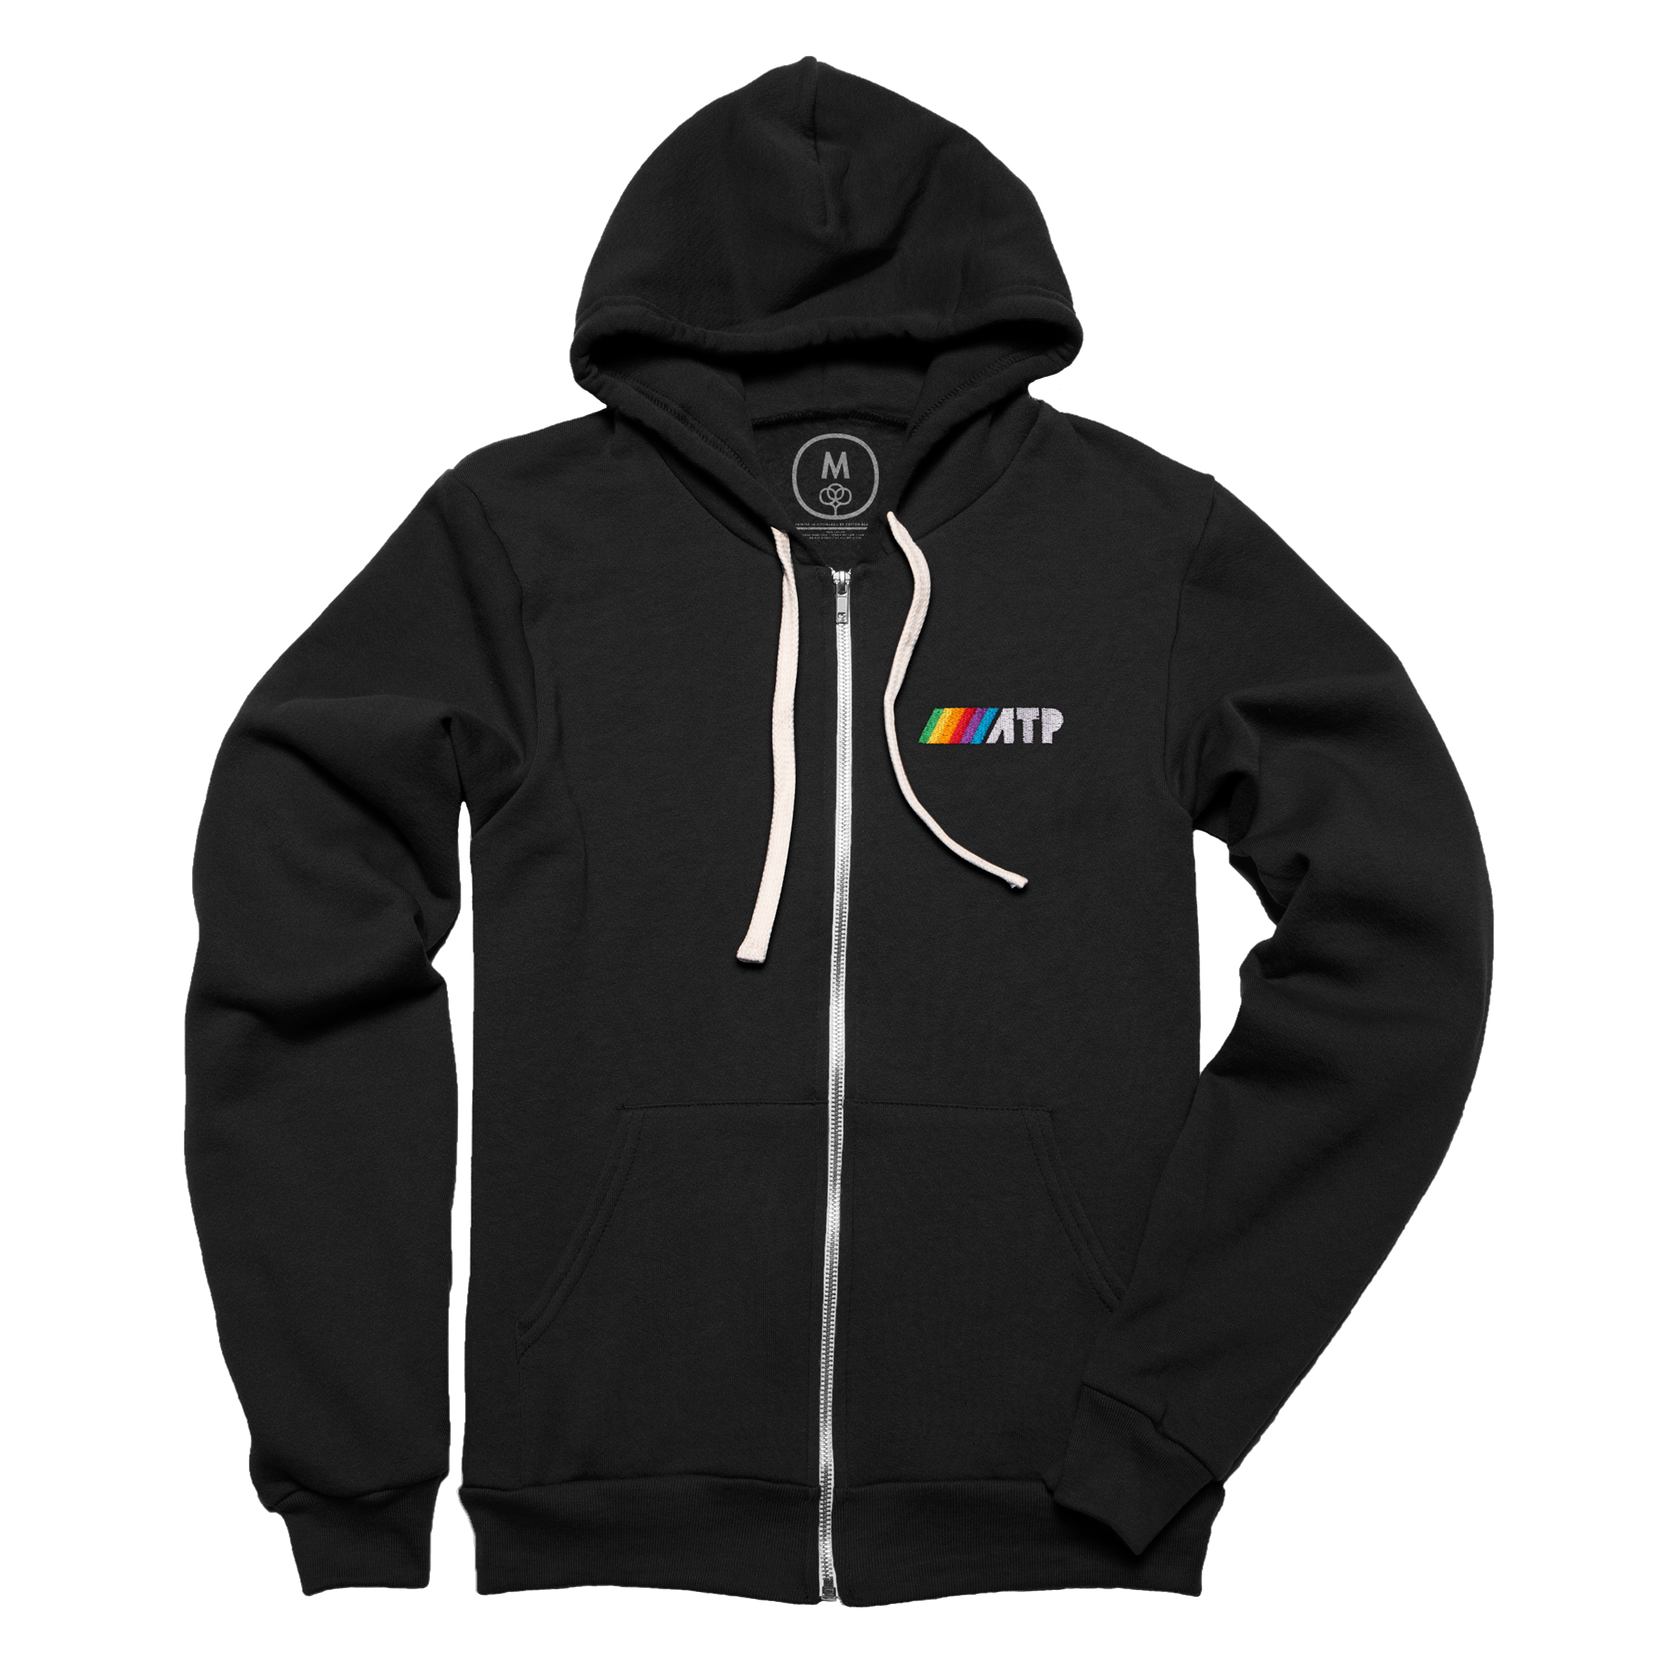 ///ATP Hoodie - A comfy, stylish, zippered hoodie with the classic embroidered ATP logo.Available in black in tri-blend.Buy now!